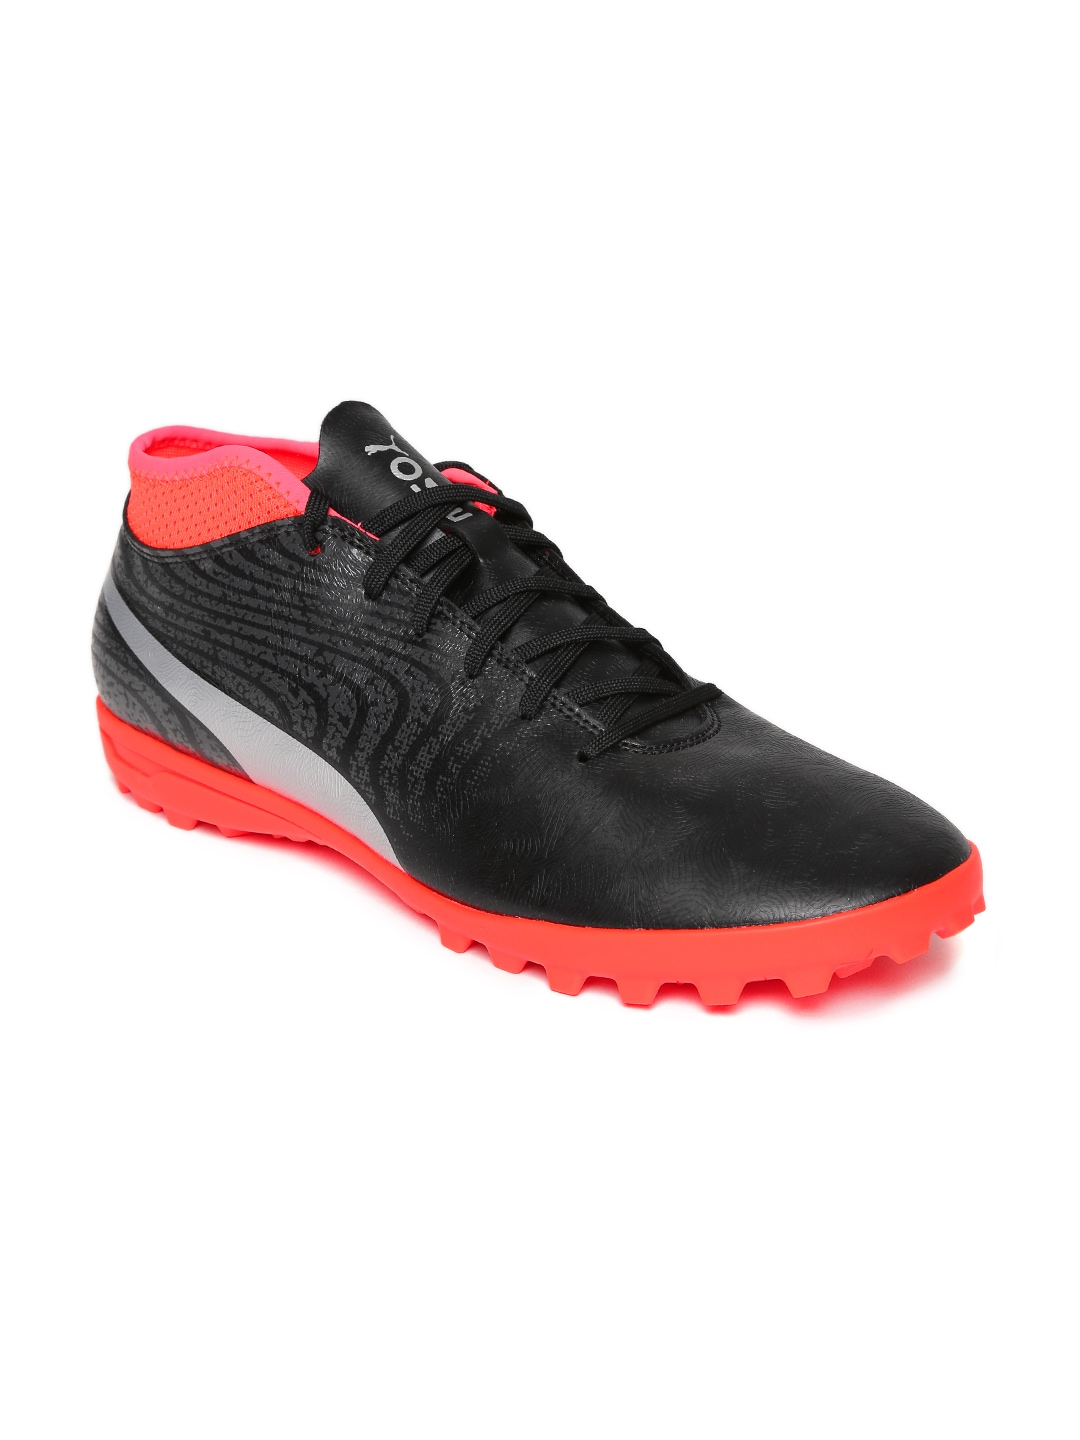 91c51aaf66e Men s Puma Sports Shoes - Buy Puma Sports Shoes for Men Online in India